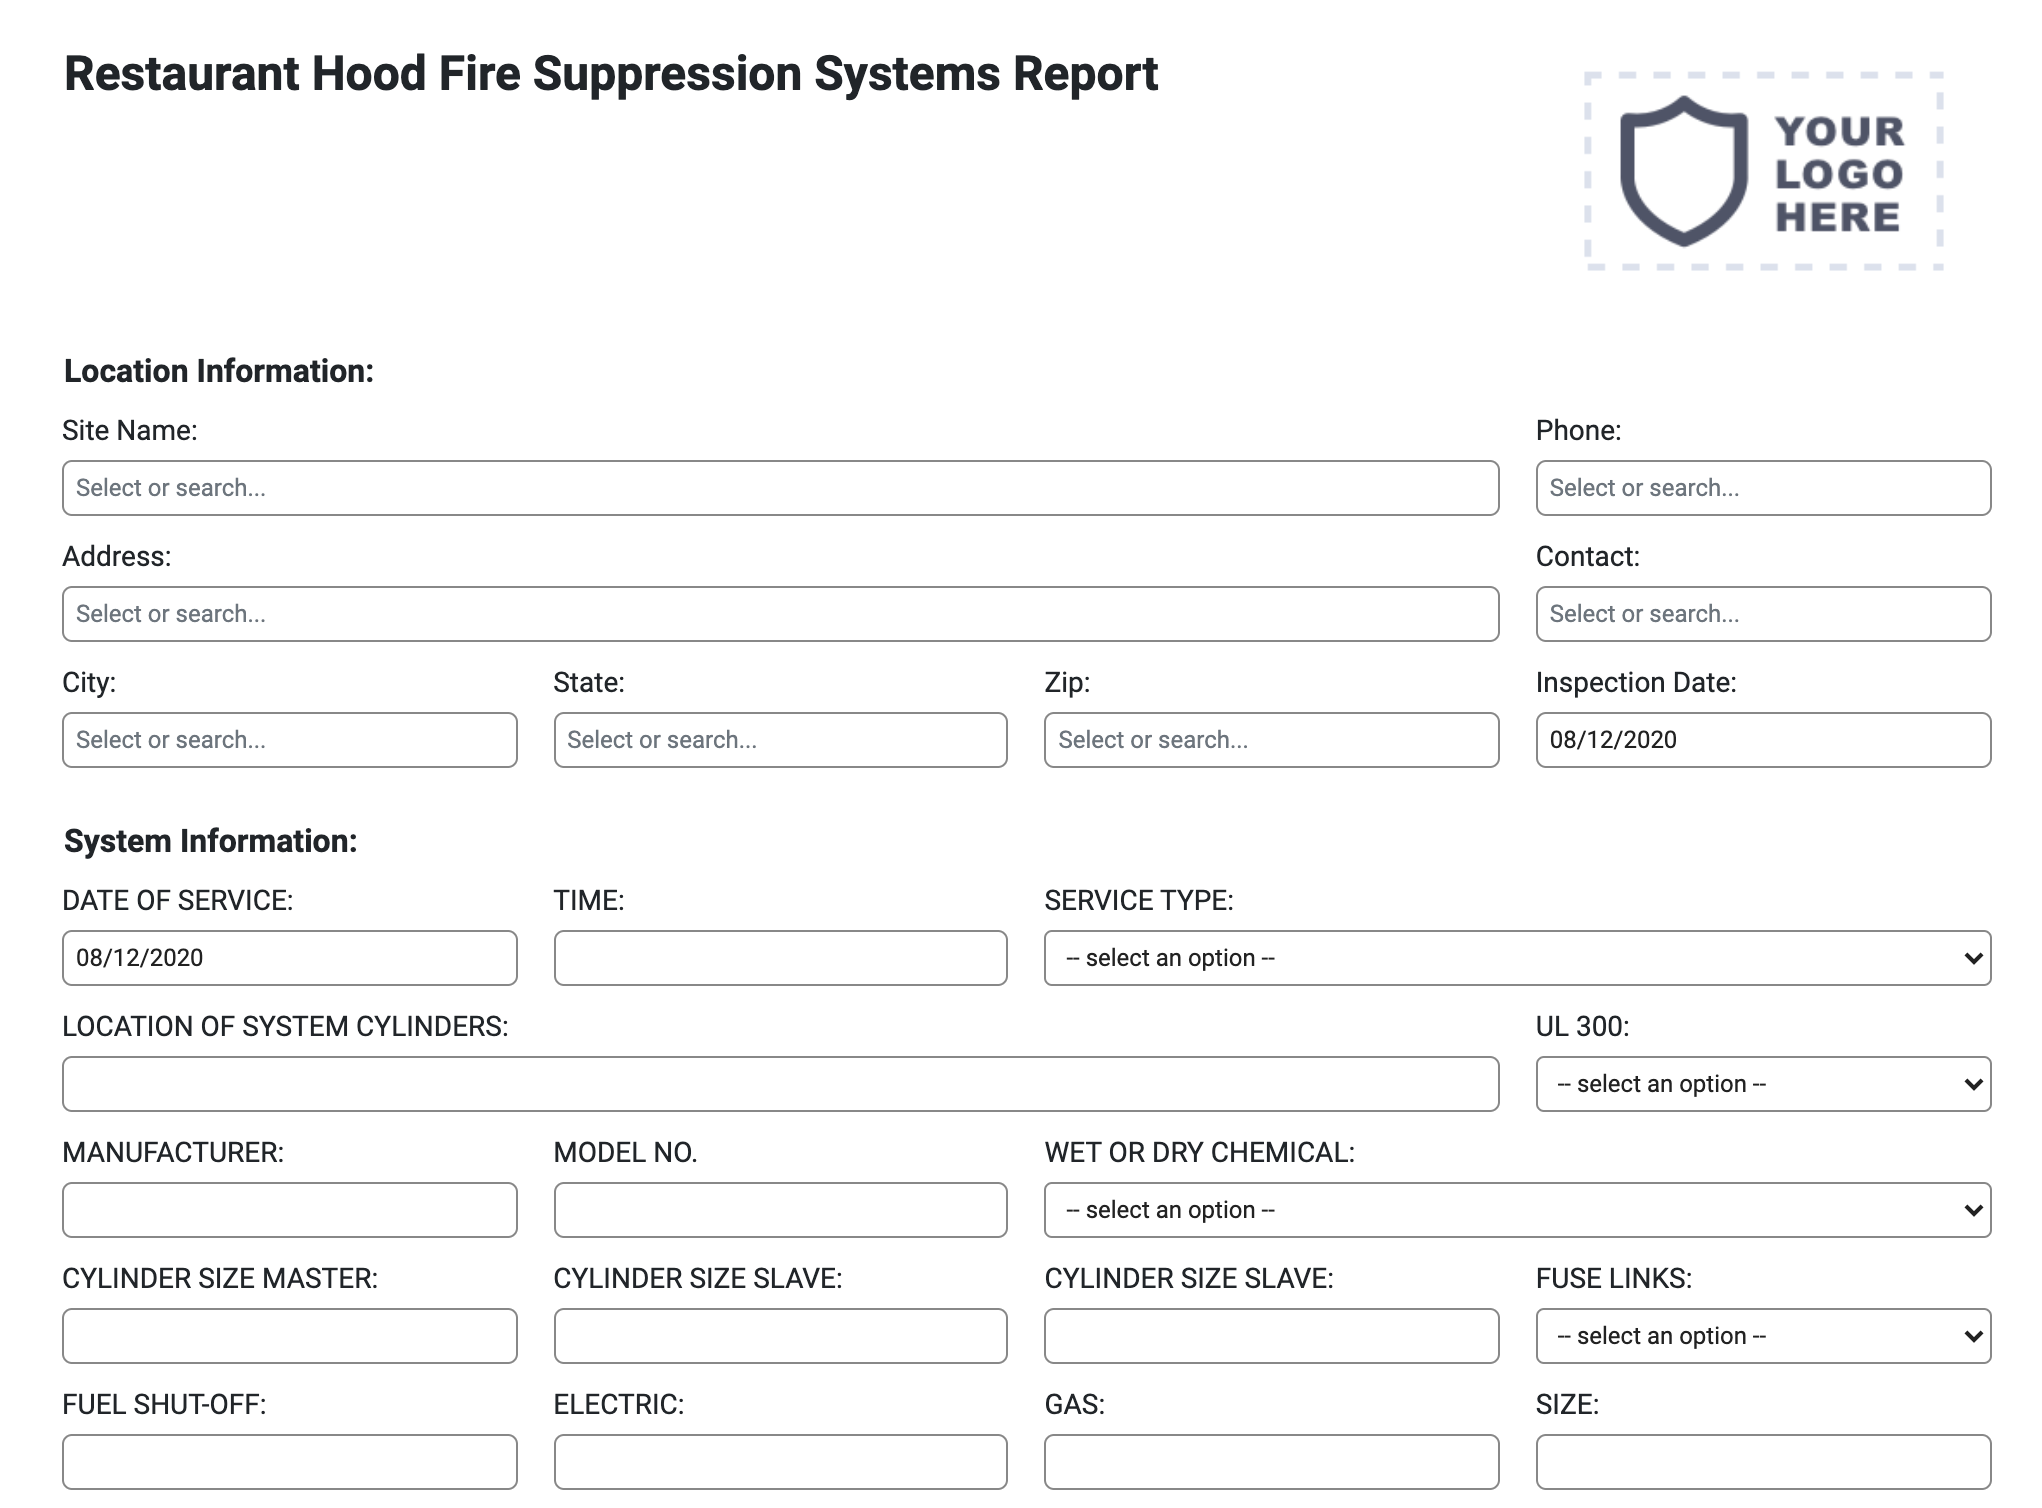 restuarant-hood-fire-suppression-report